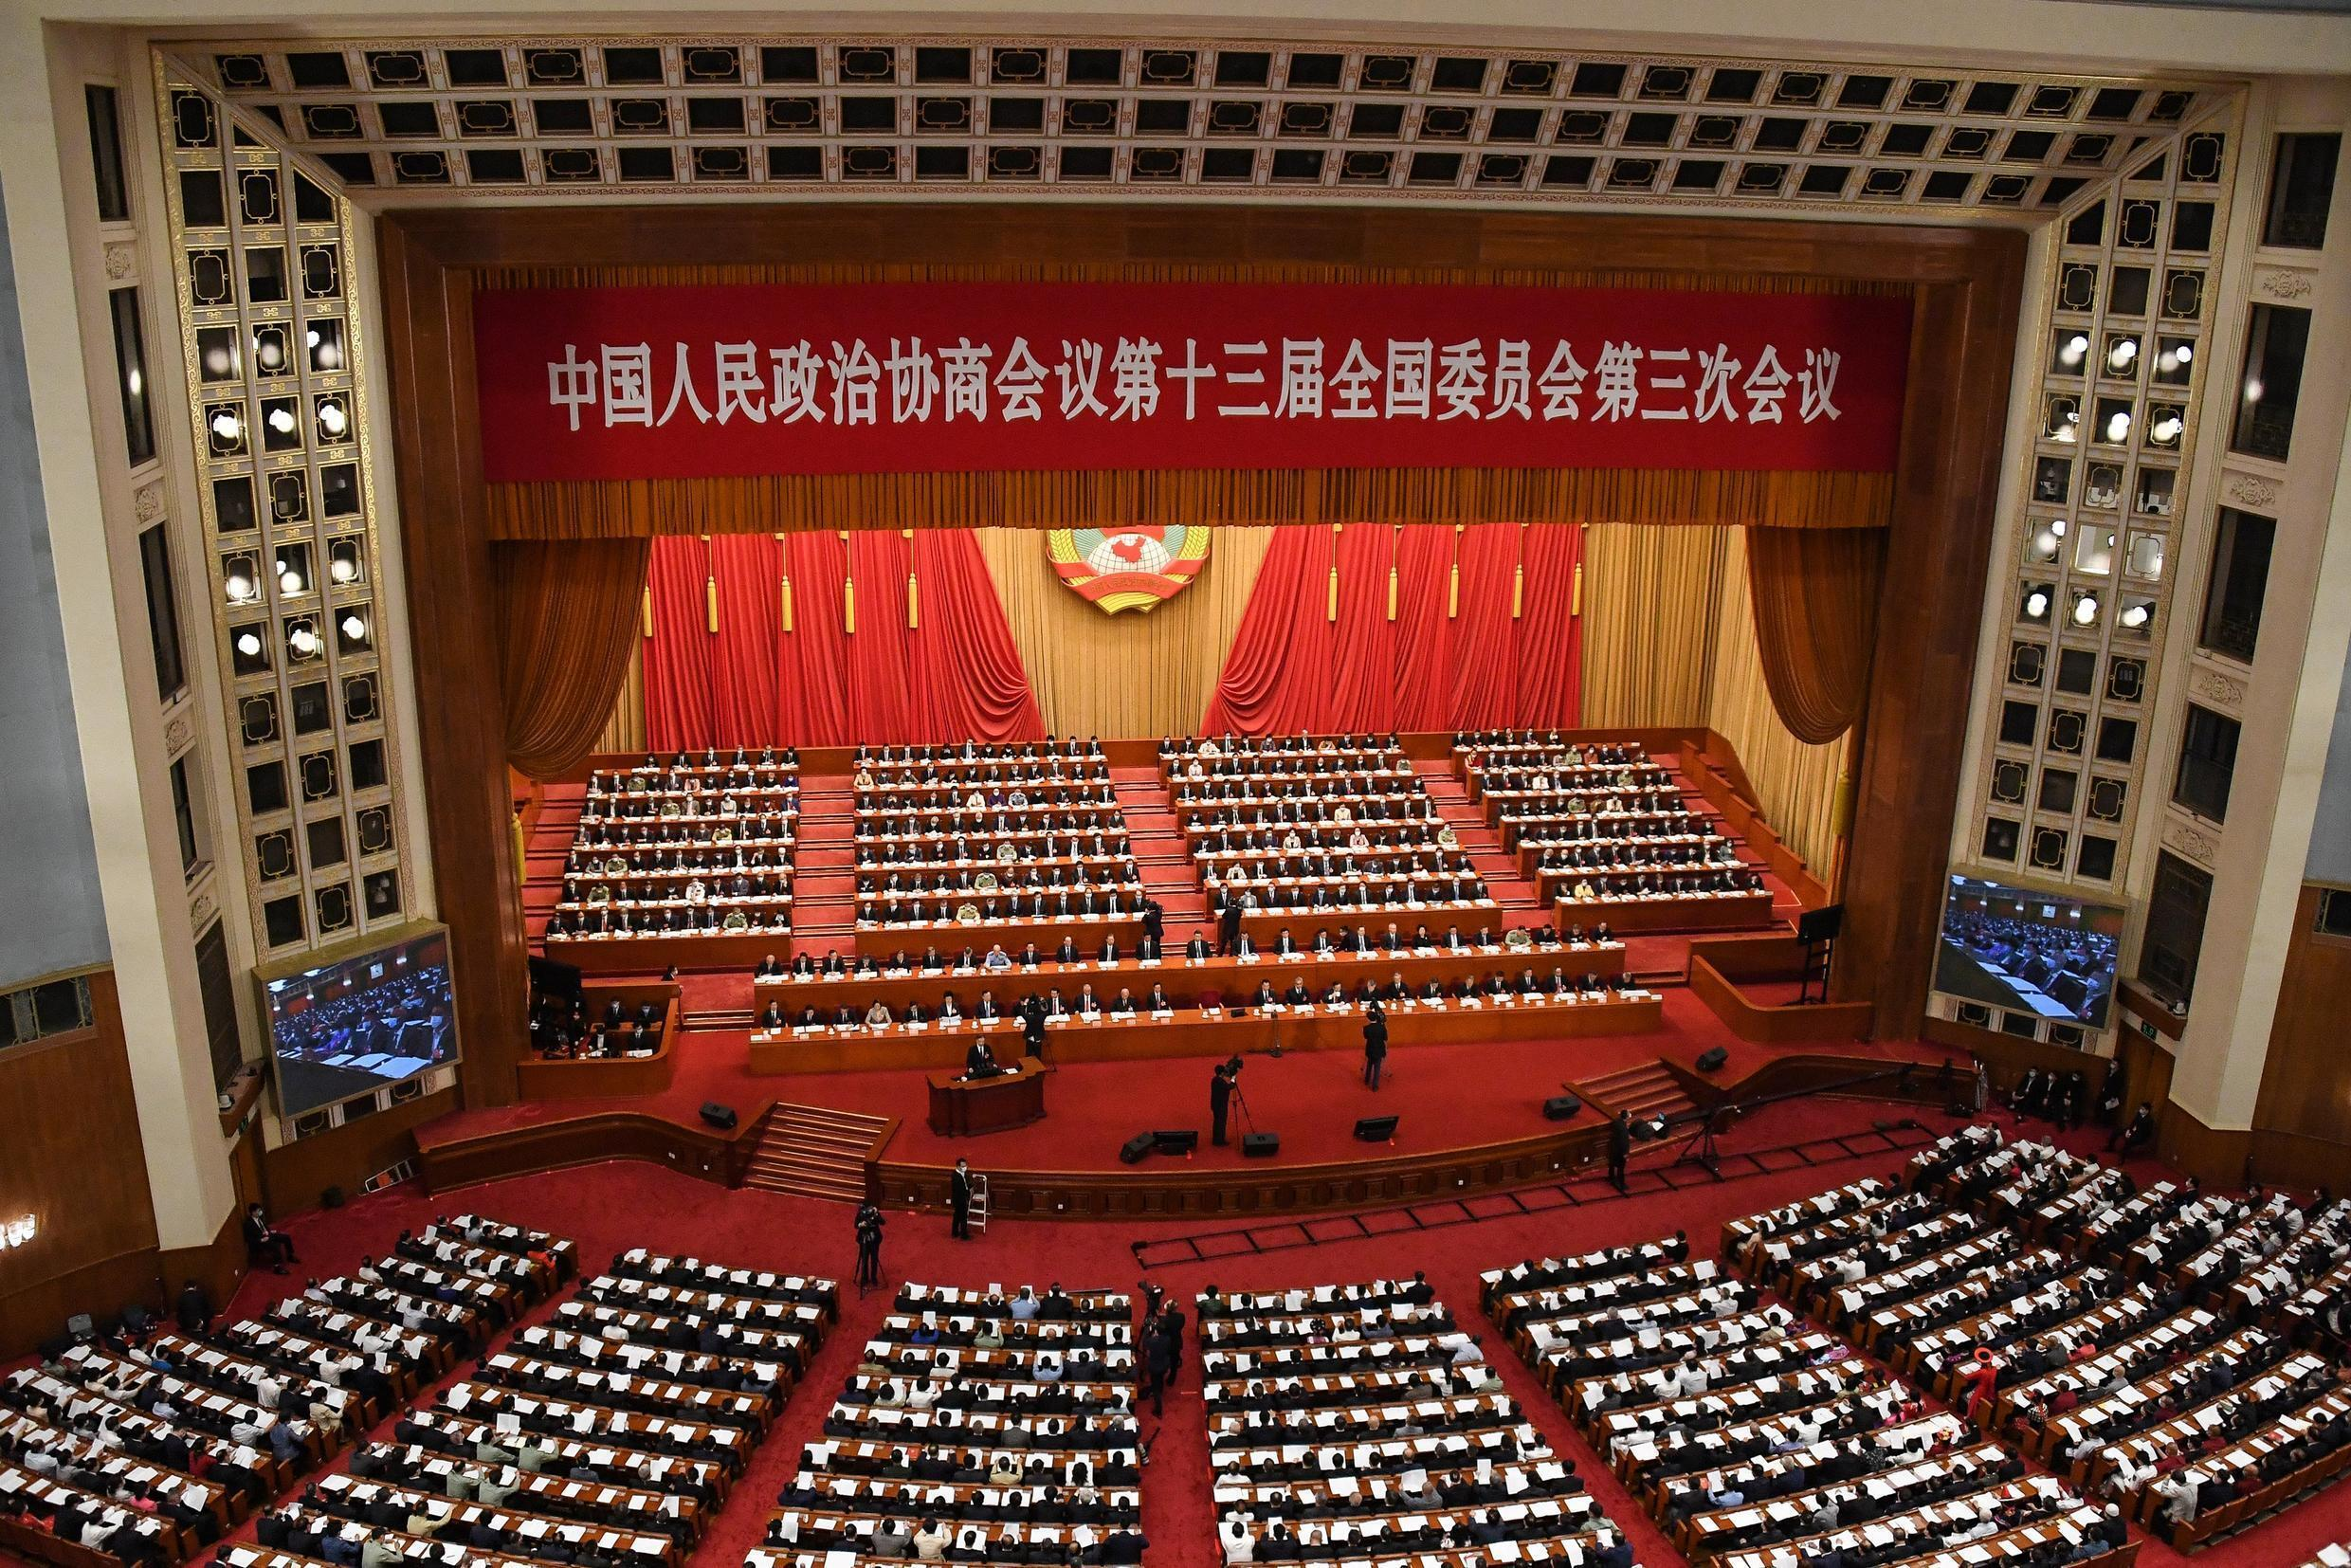 More than two thousand delegates attended the opening of the Chinese People's Political Consultative Conference opened at Beijing's Great Hall of the People